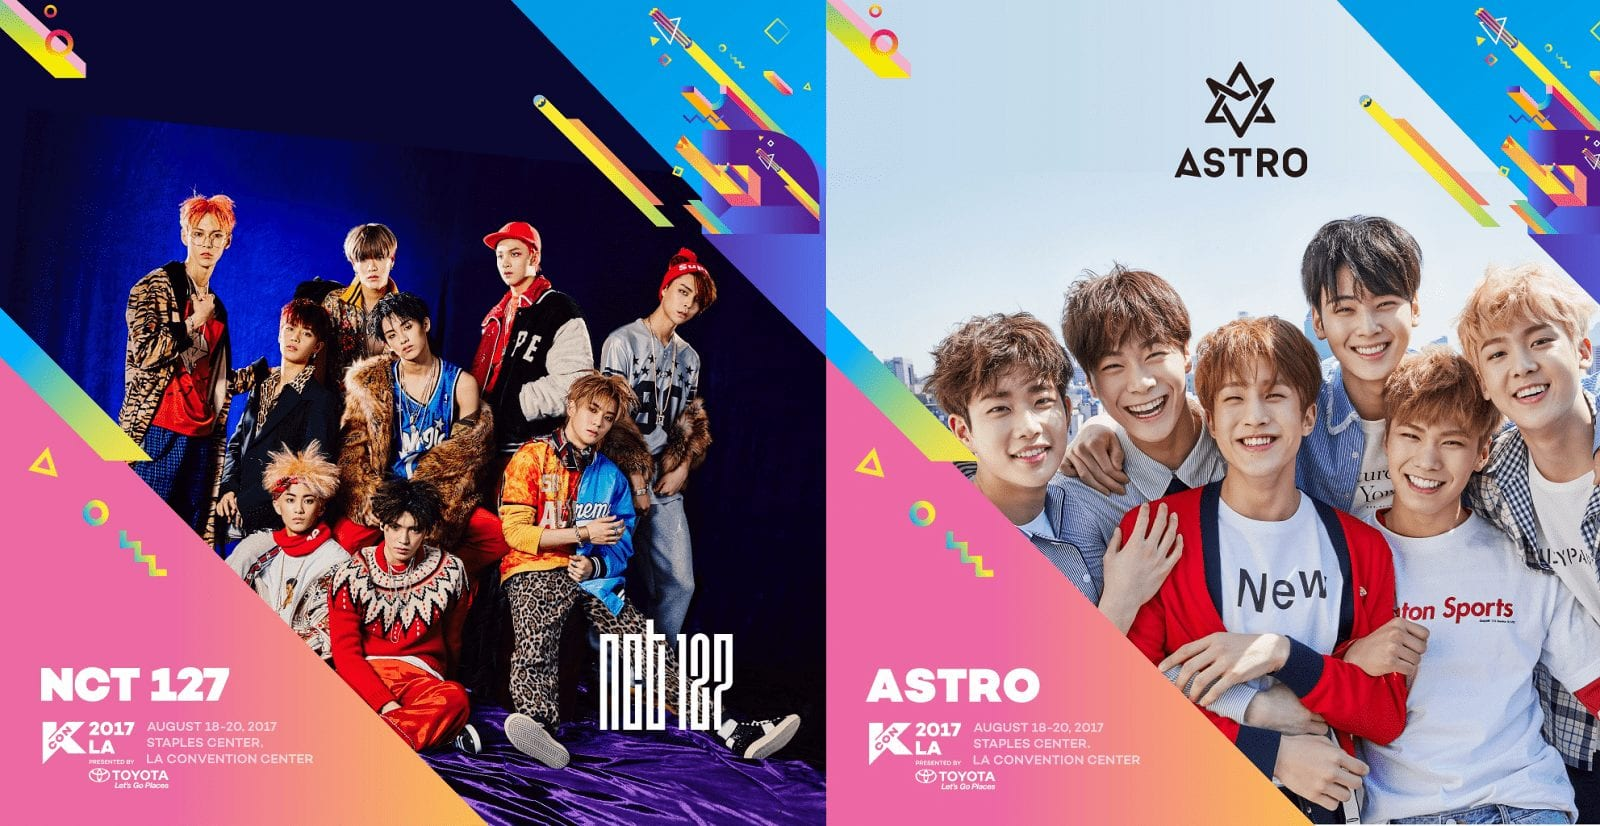 NCT 127 And ASTRO Join Artist Lineup For KCON LA